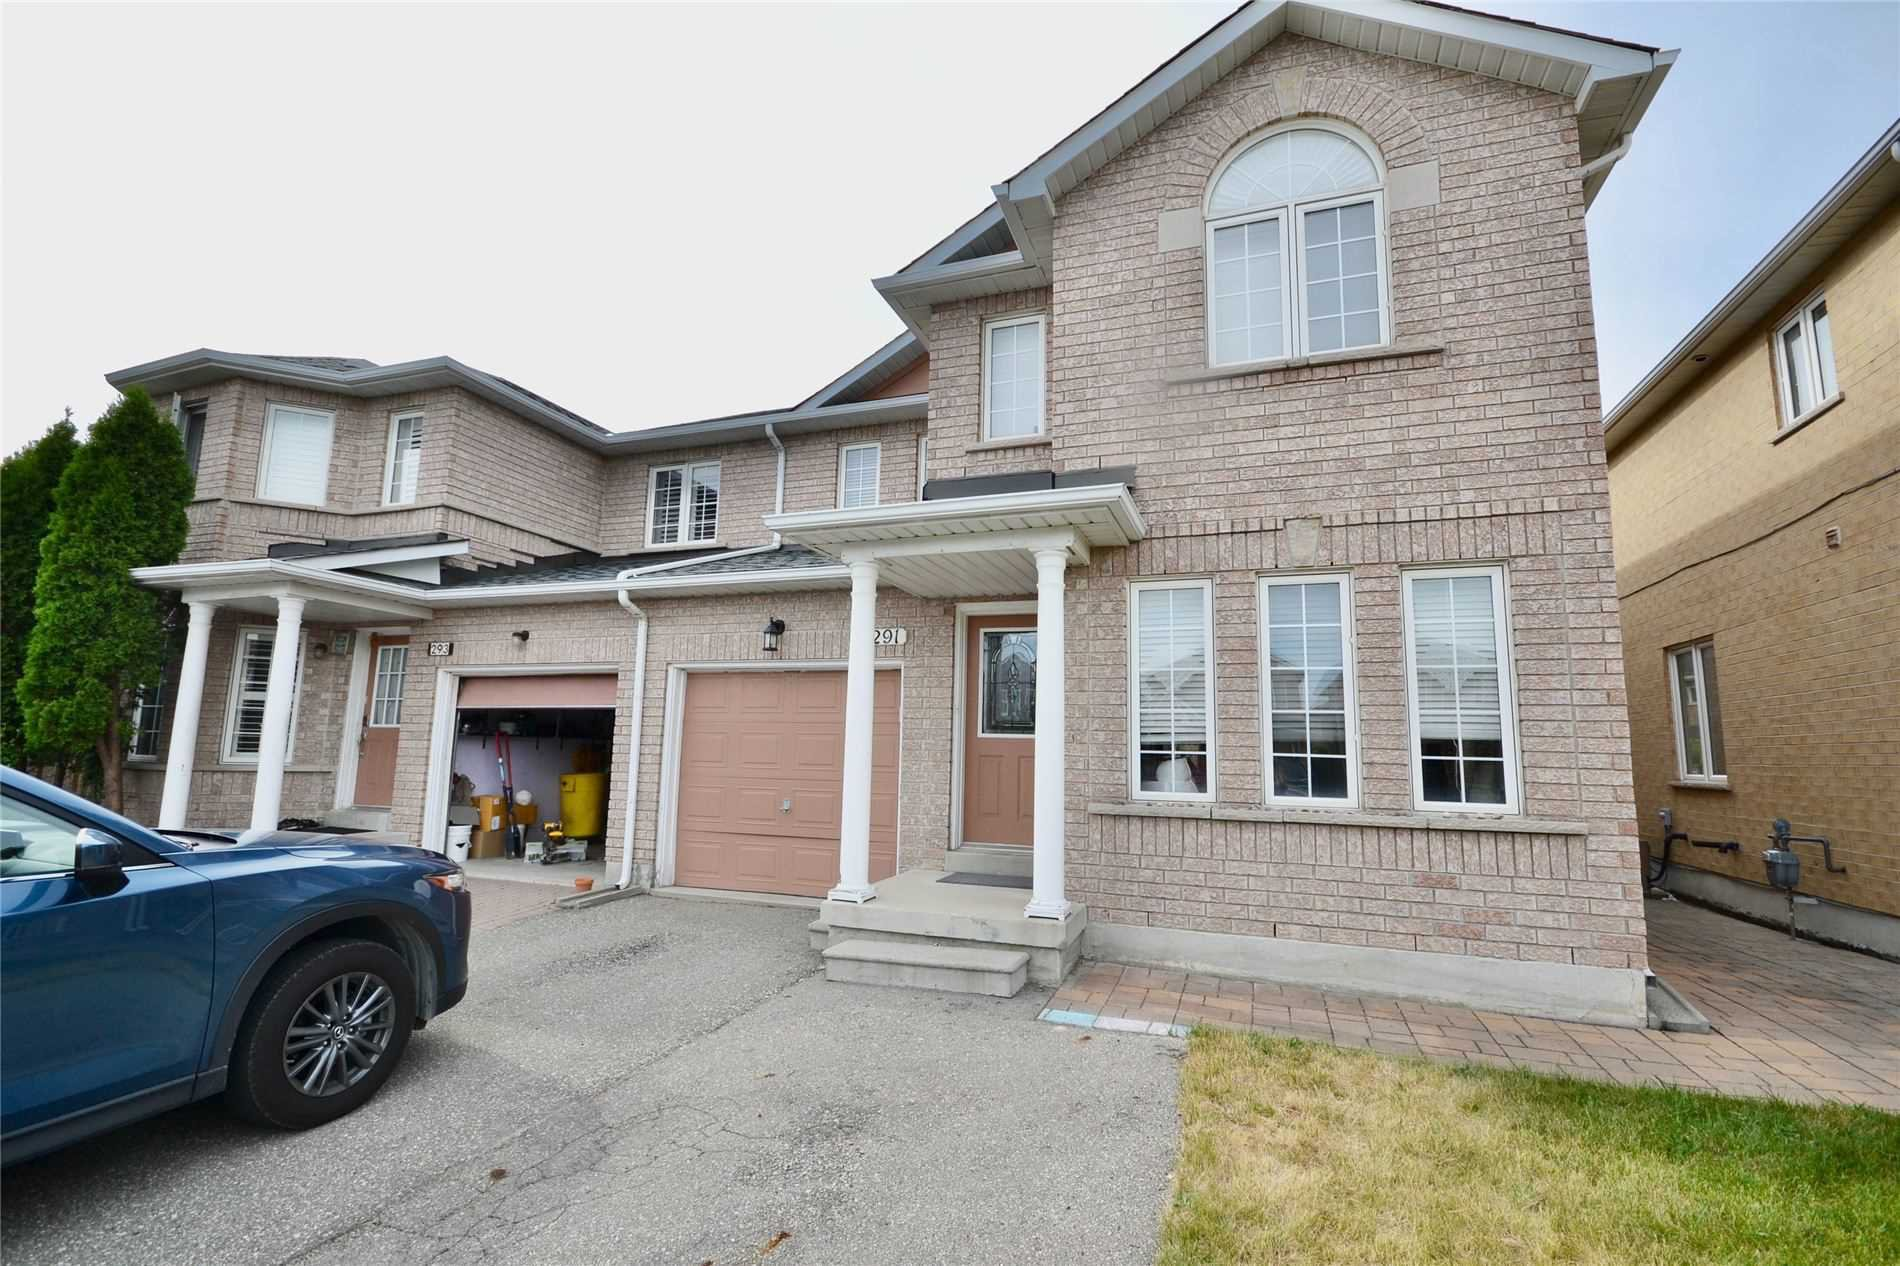 Main Photo: 291 St Joan Of Arc Avenue in Vaughan: Maple House (2-Storey) for lease : MLS®# N4828128